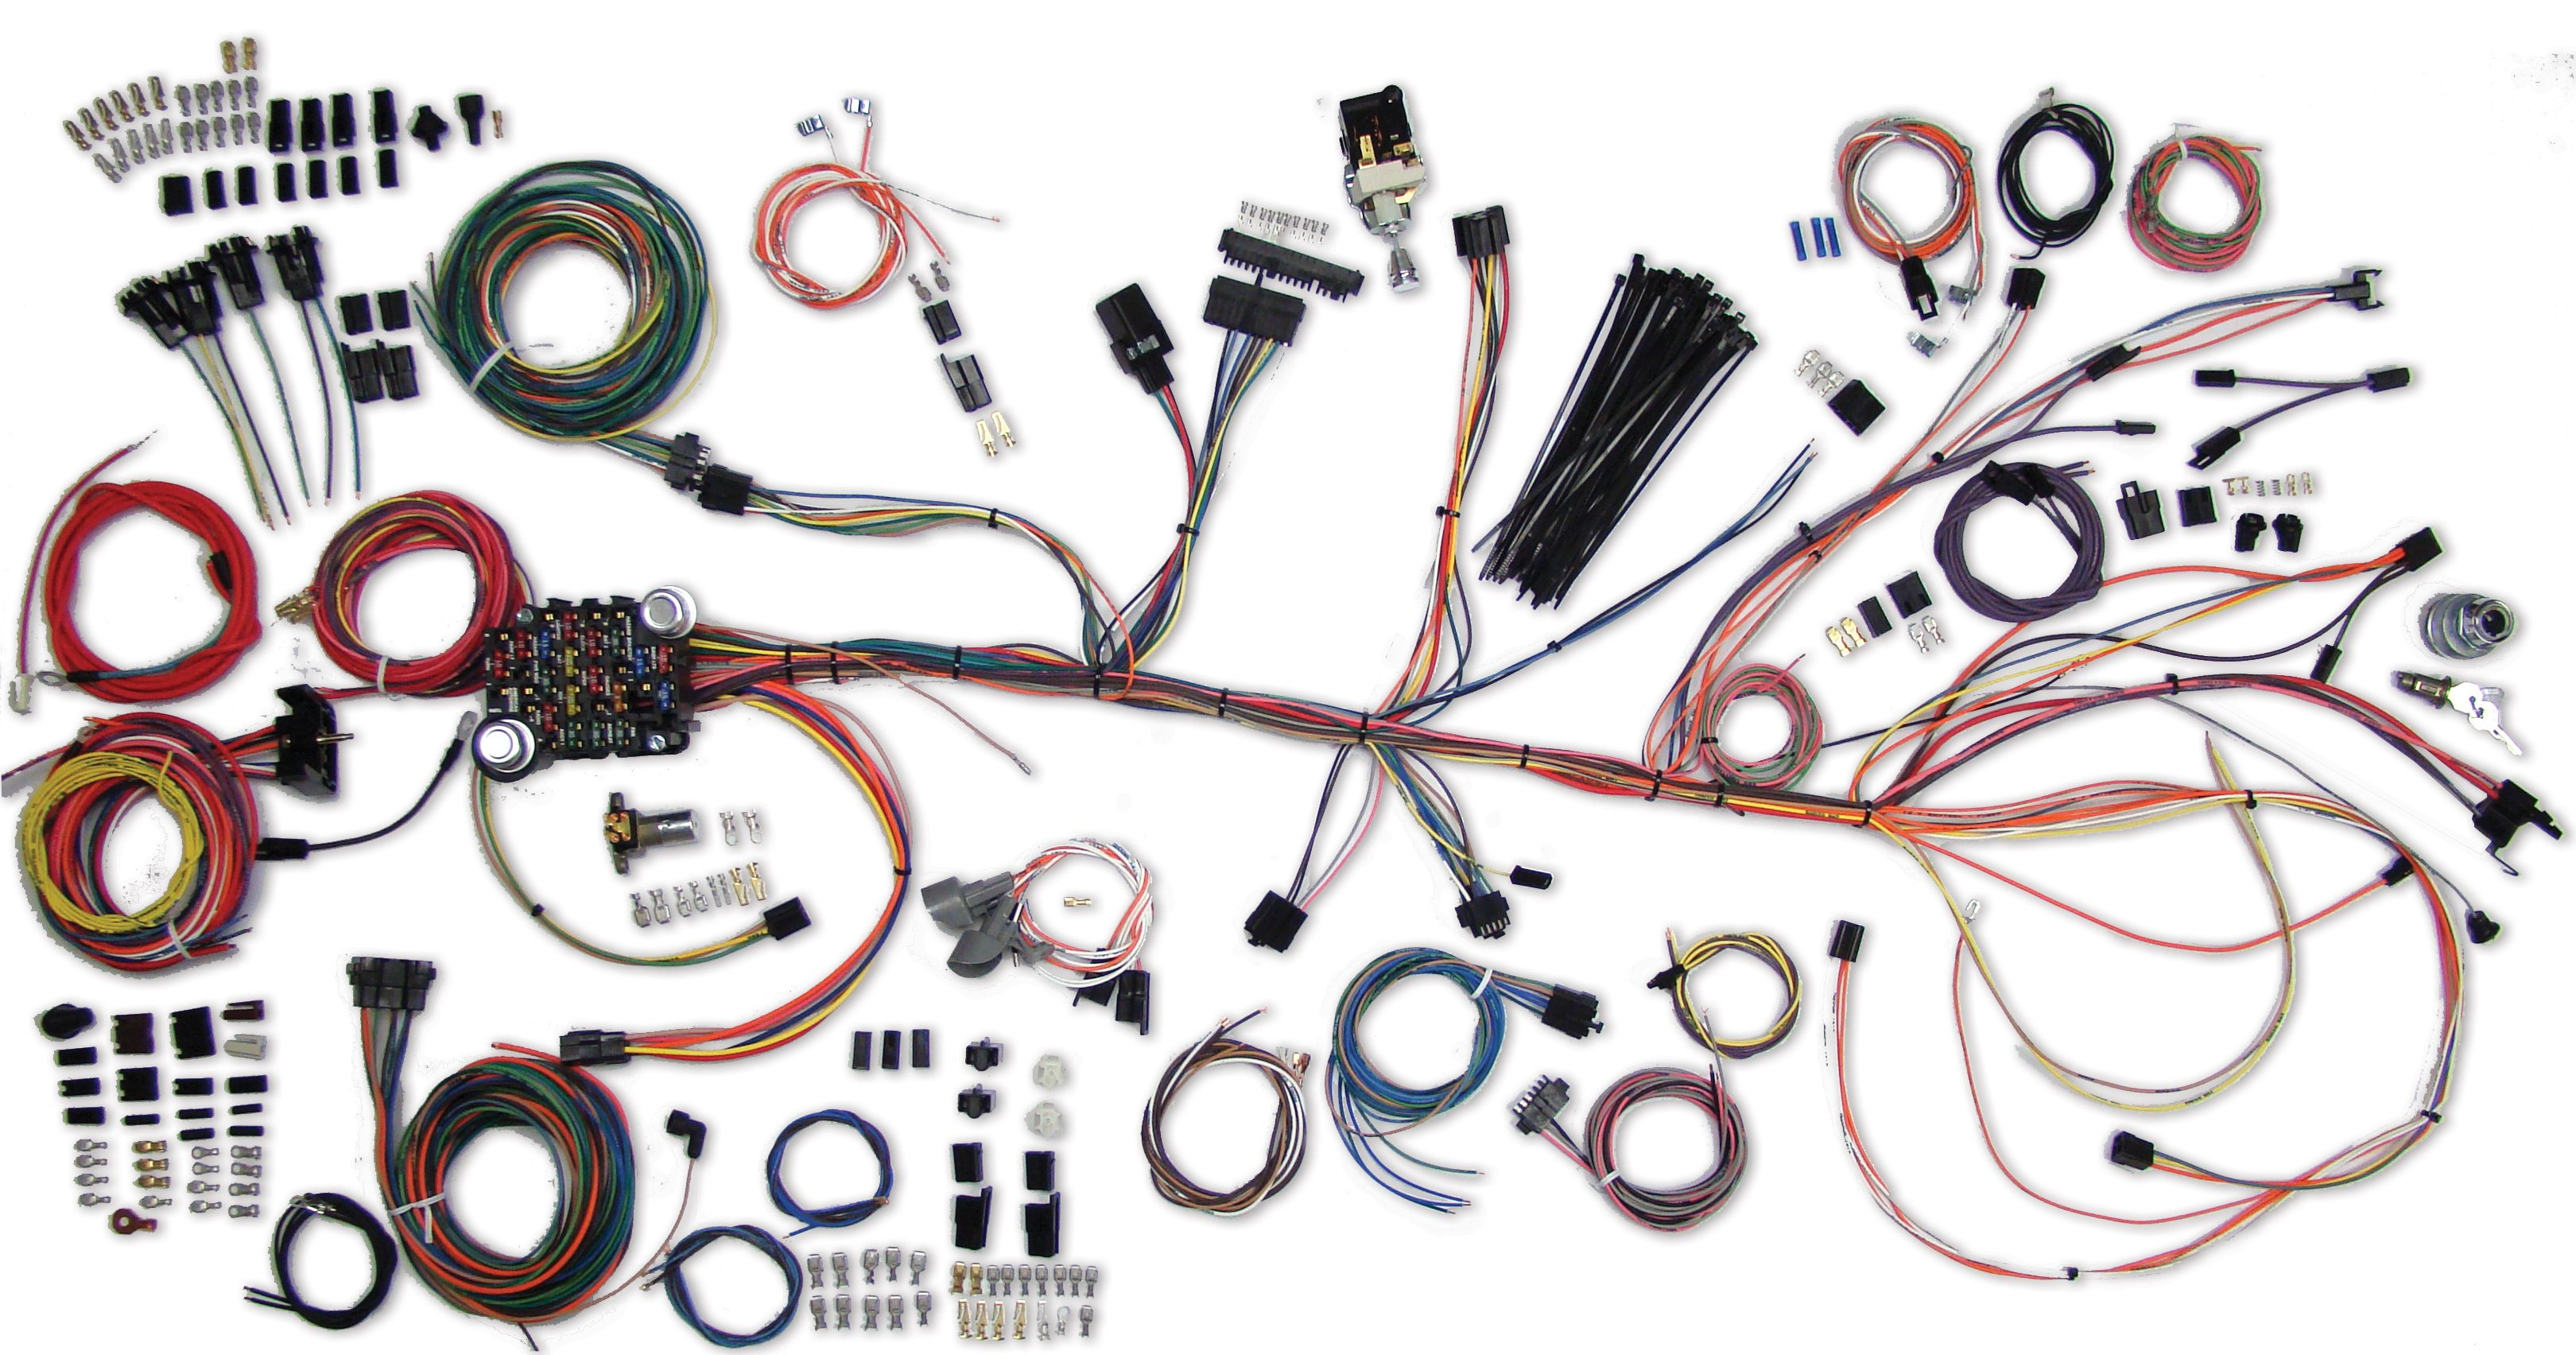 [DIAGRAM_4FR]  Classic Update Kit- 1964-67 Chevy Chevelle | American Autowire | 1966 Chevy Chevelle Fuse Box |  | American Autowire